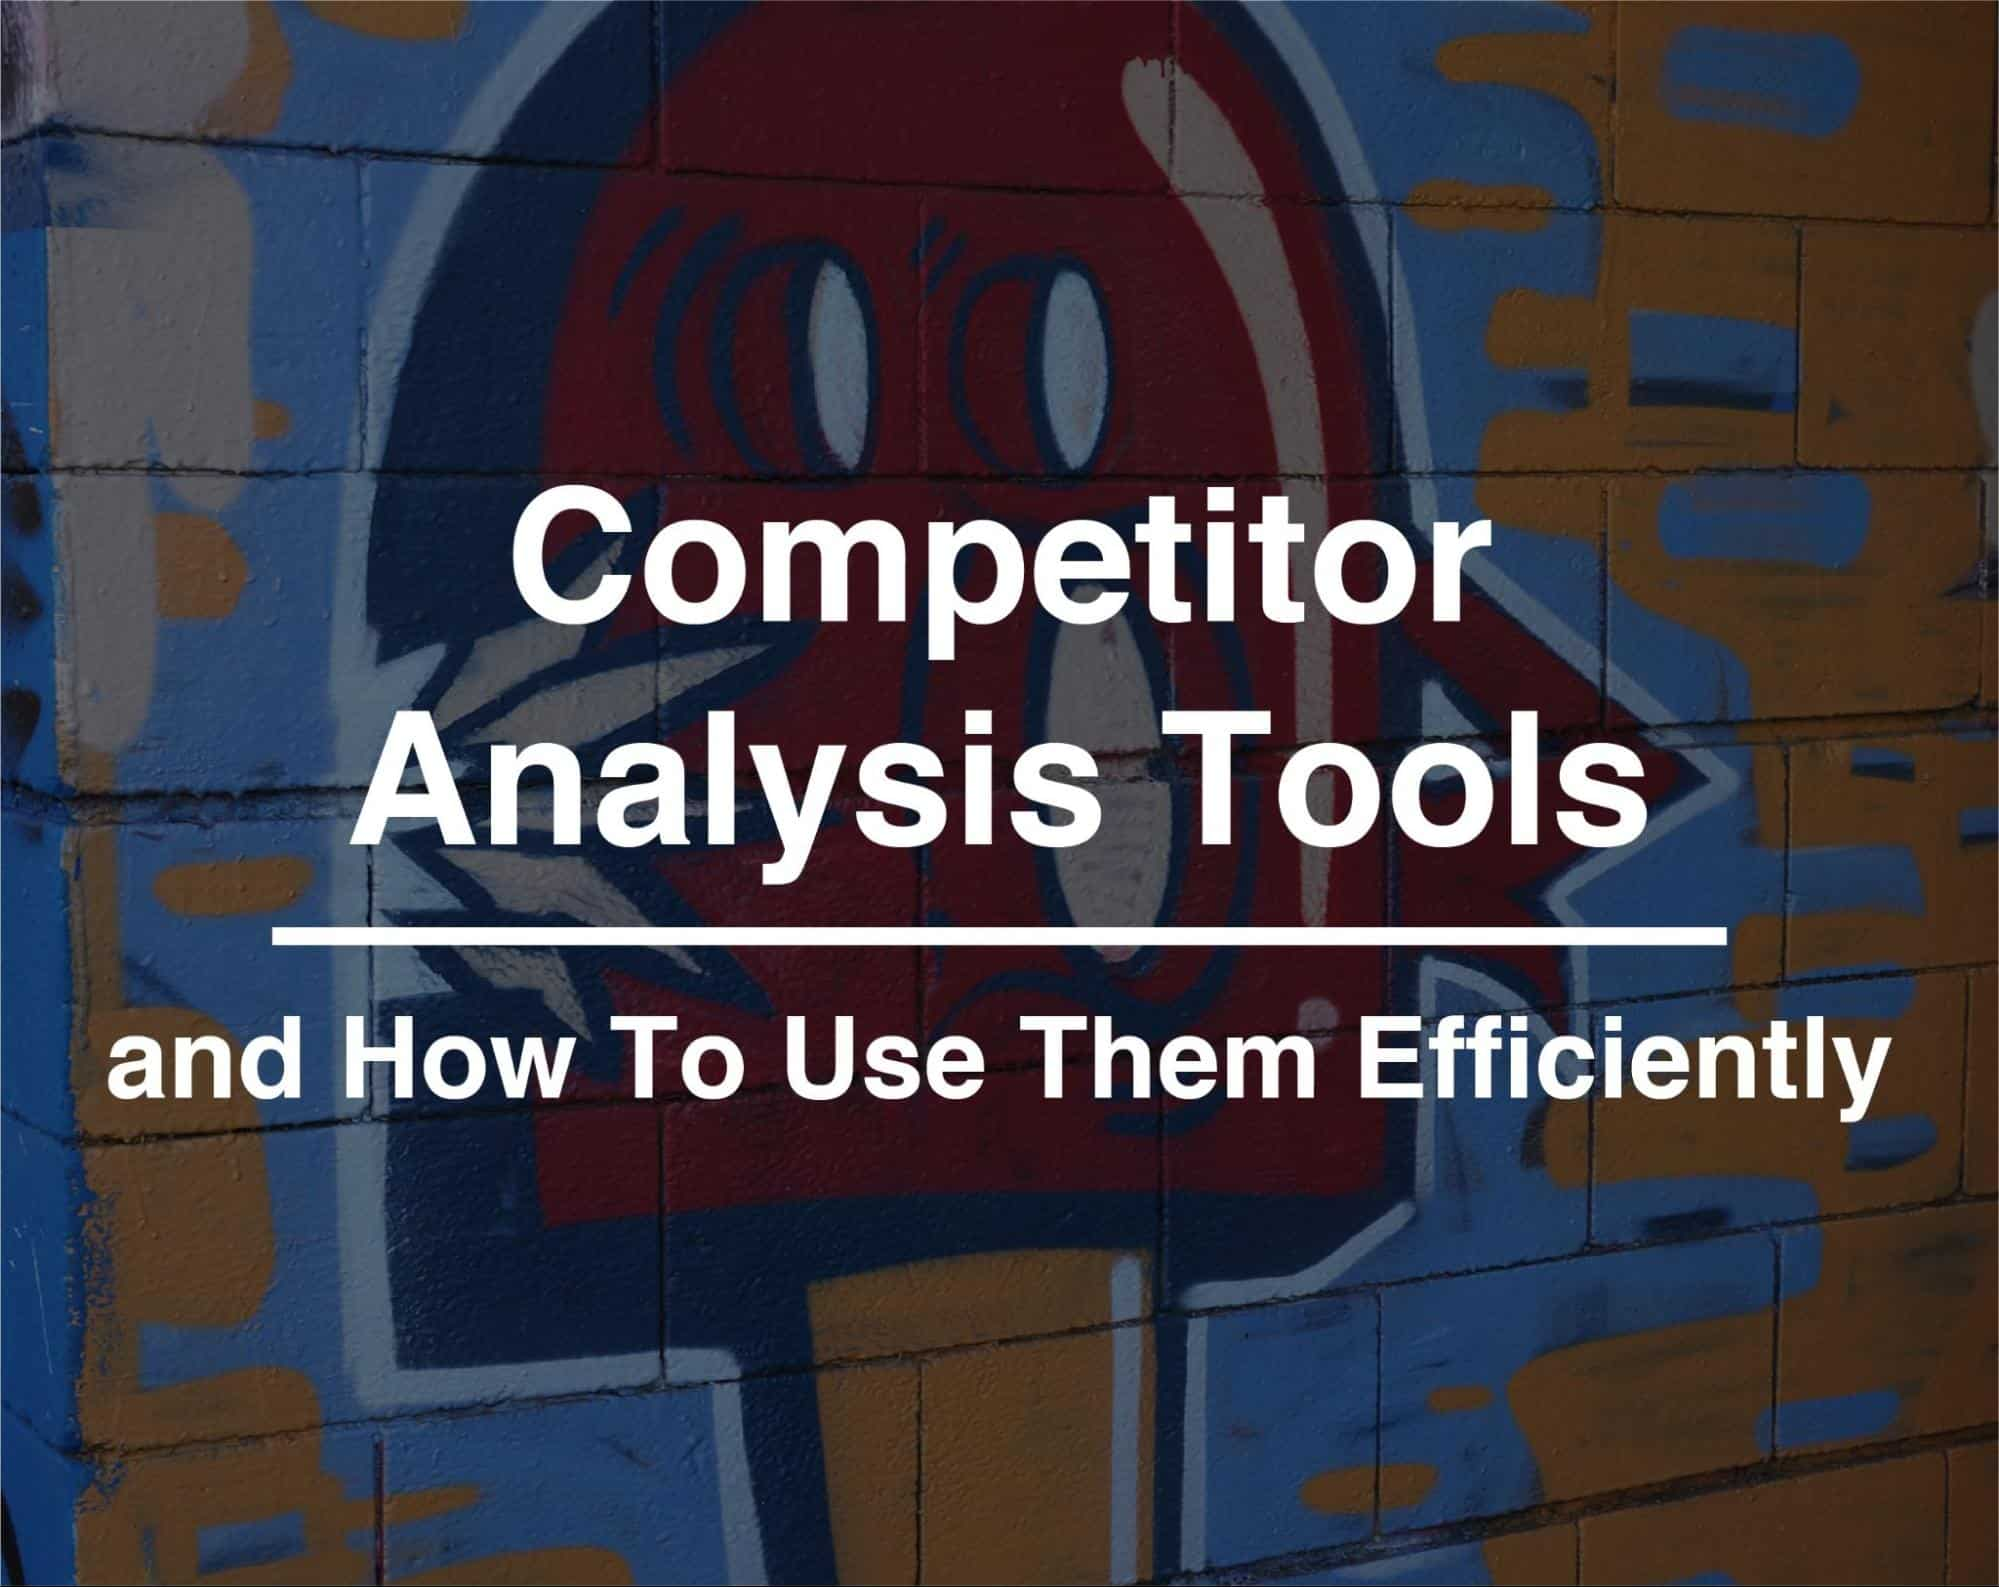 Competitor Analysis Tools and How To Use Them Efficiently